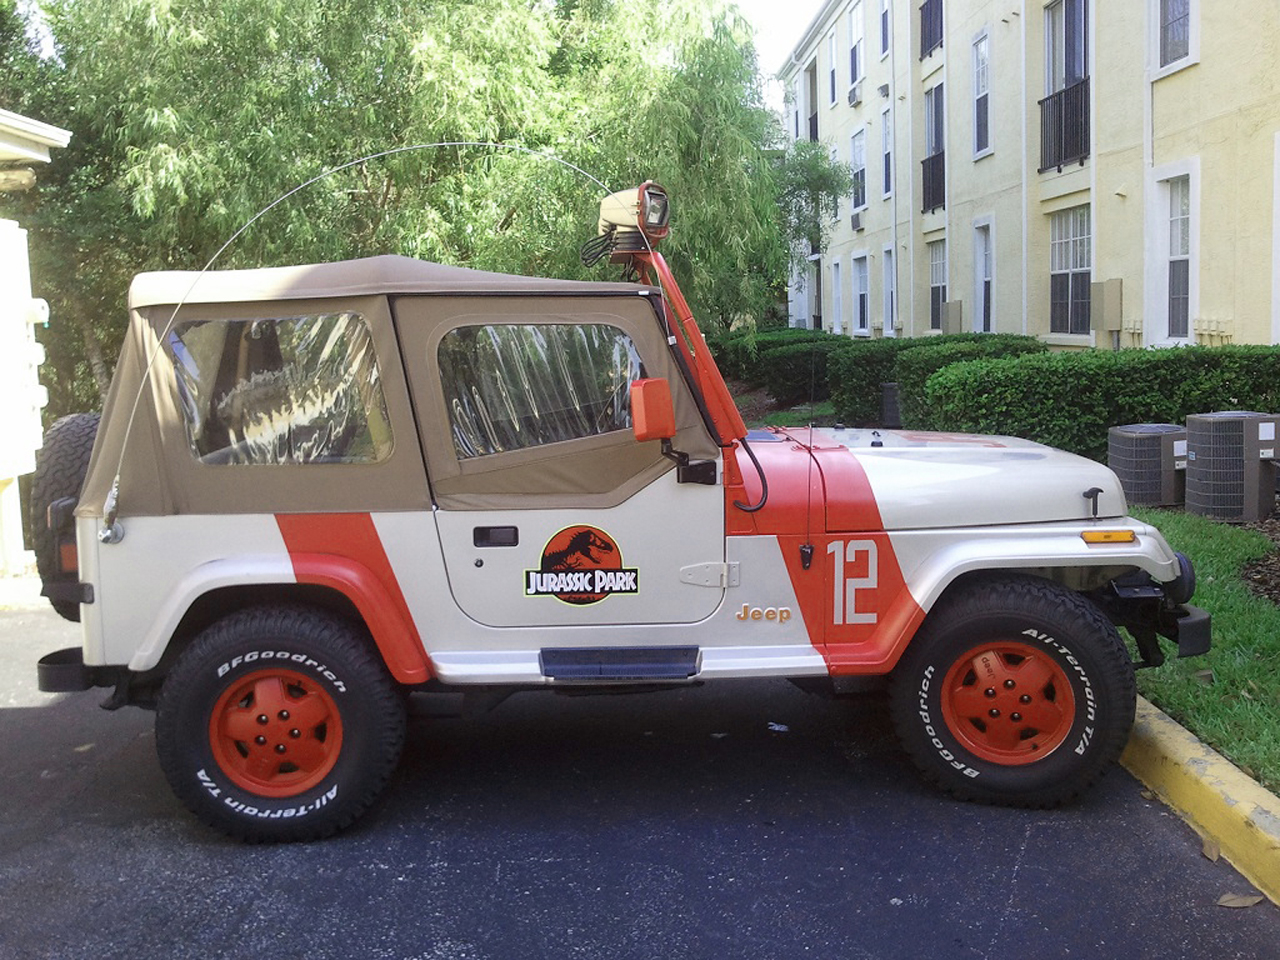 Jeep Certified Pre Owned >> eBay Find of the Day: Jeep Wrangler Jurassic Park edition - Autoblog